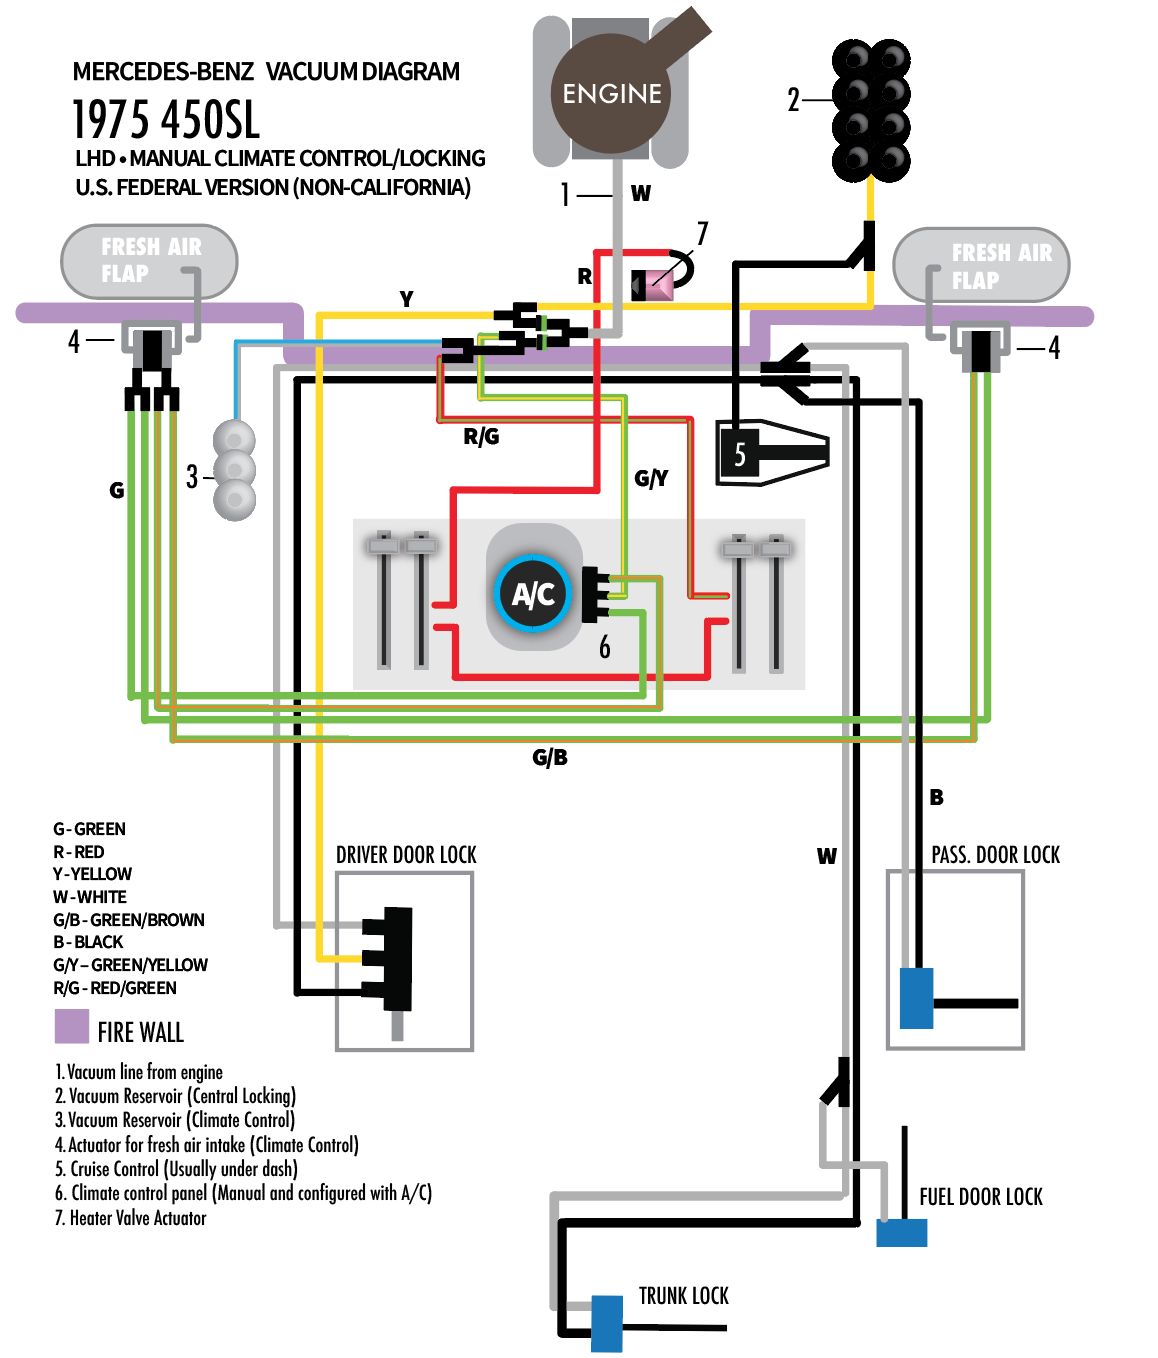 mercedes benz 450sl wiring diagram wiring diagram harness wiring likewise mercedes 560sl vacuum diagram as well wiring [ 1158 x 1358 Pixel ]